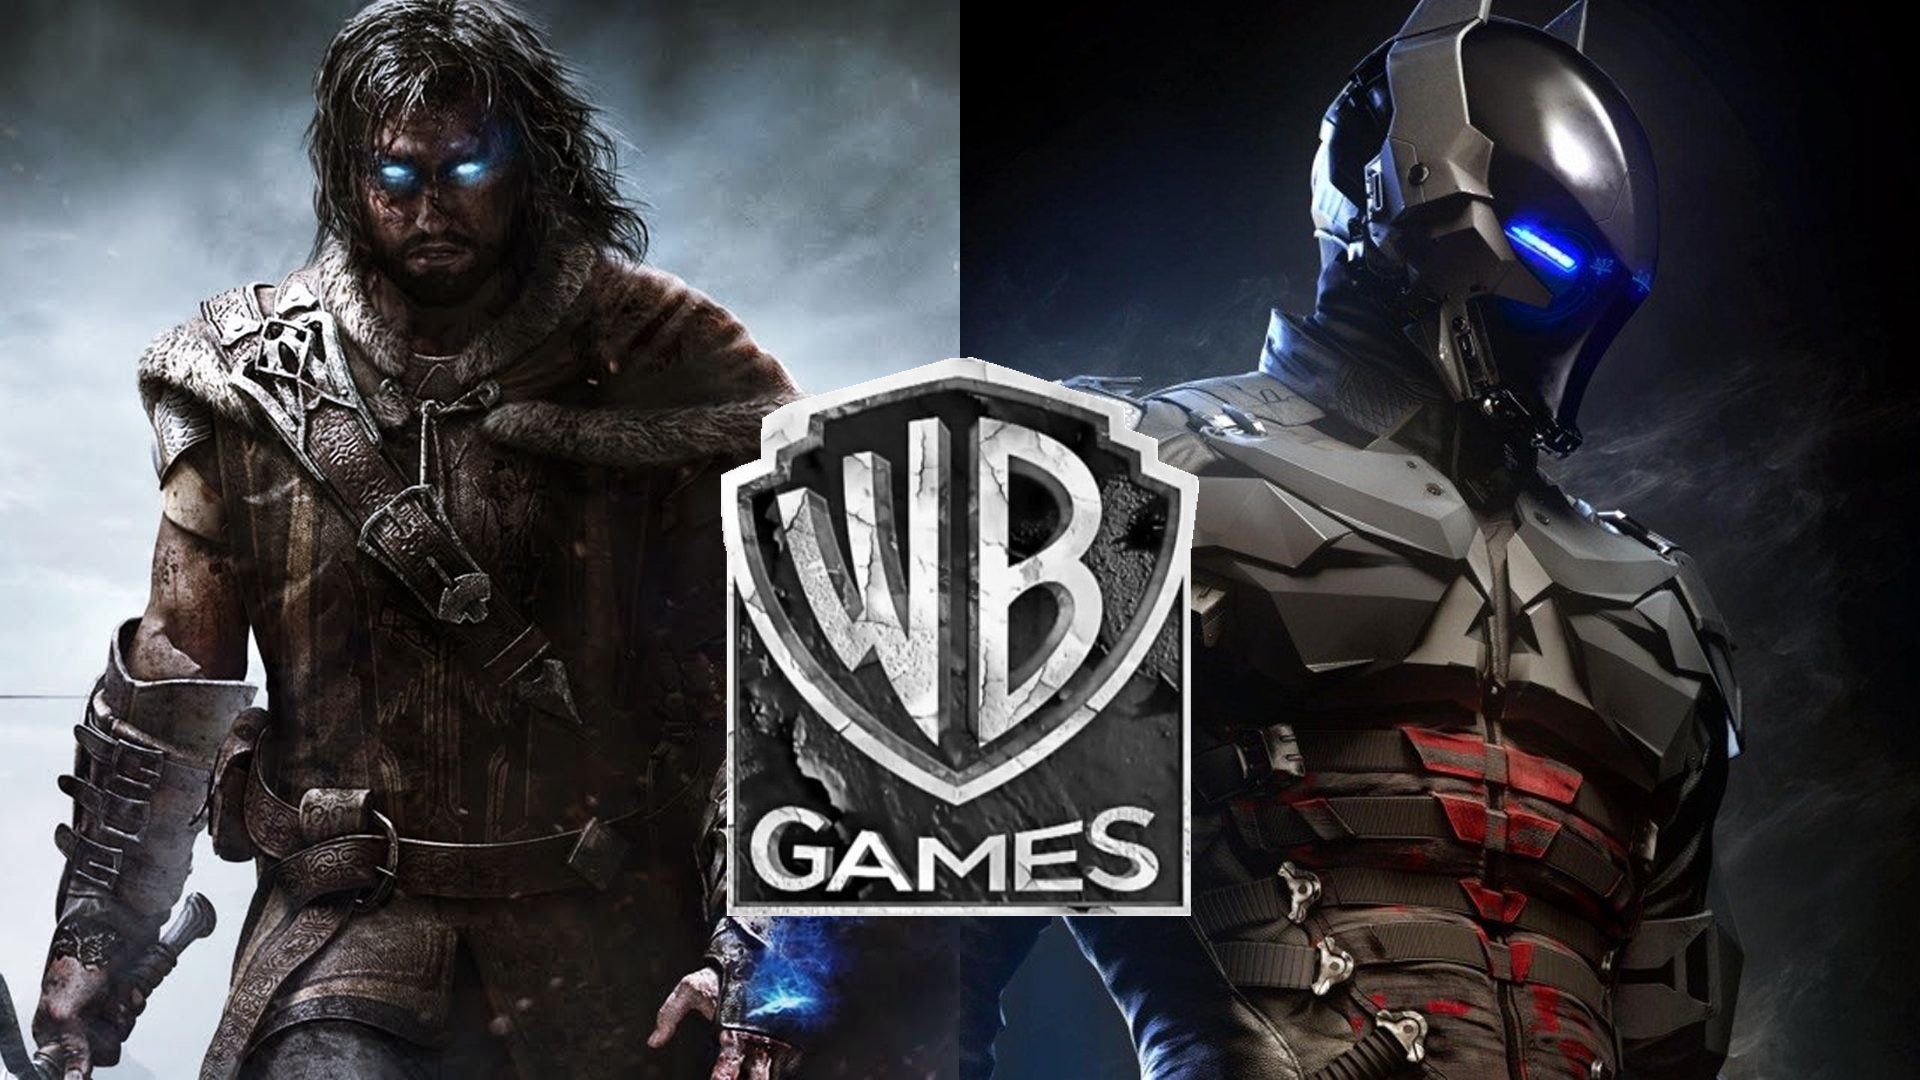 Warner Bros gaming division no longer for sale at present